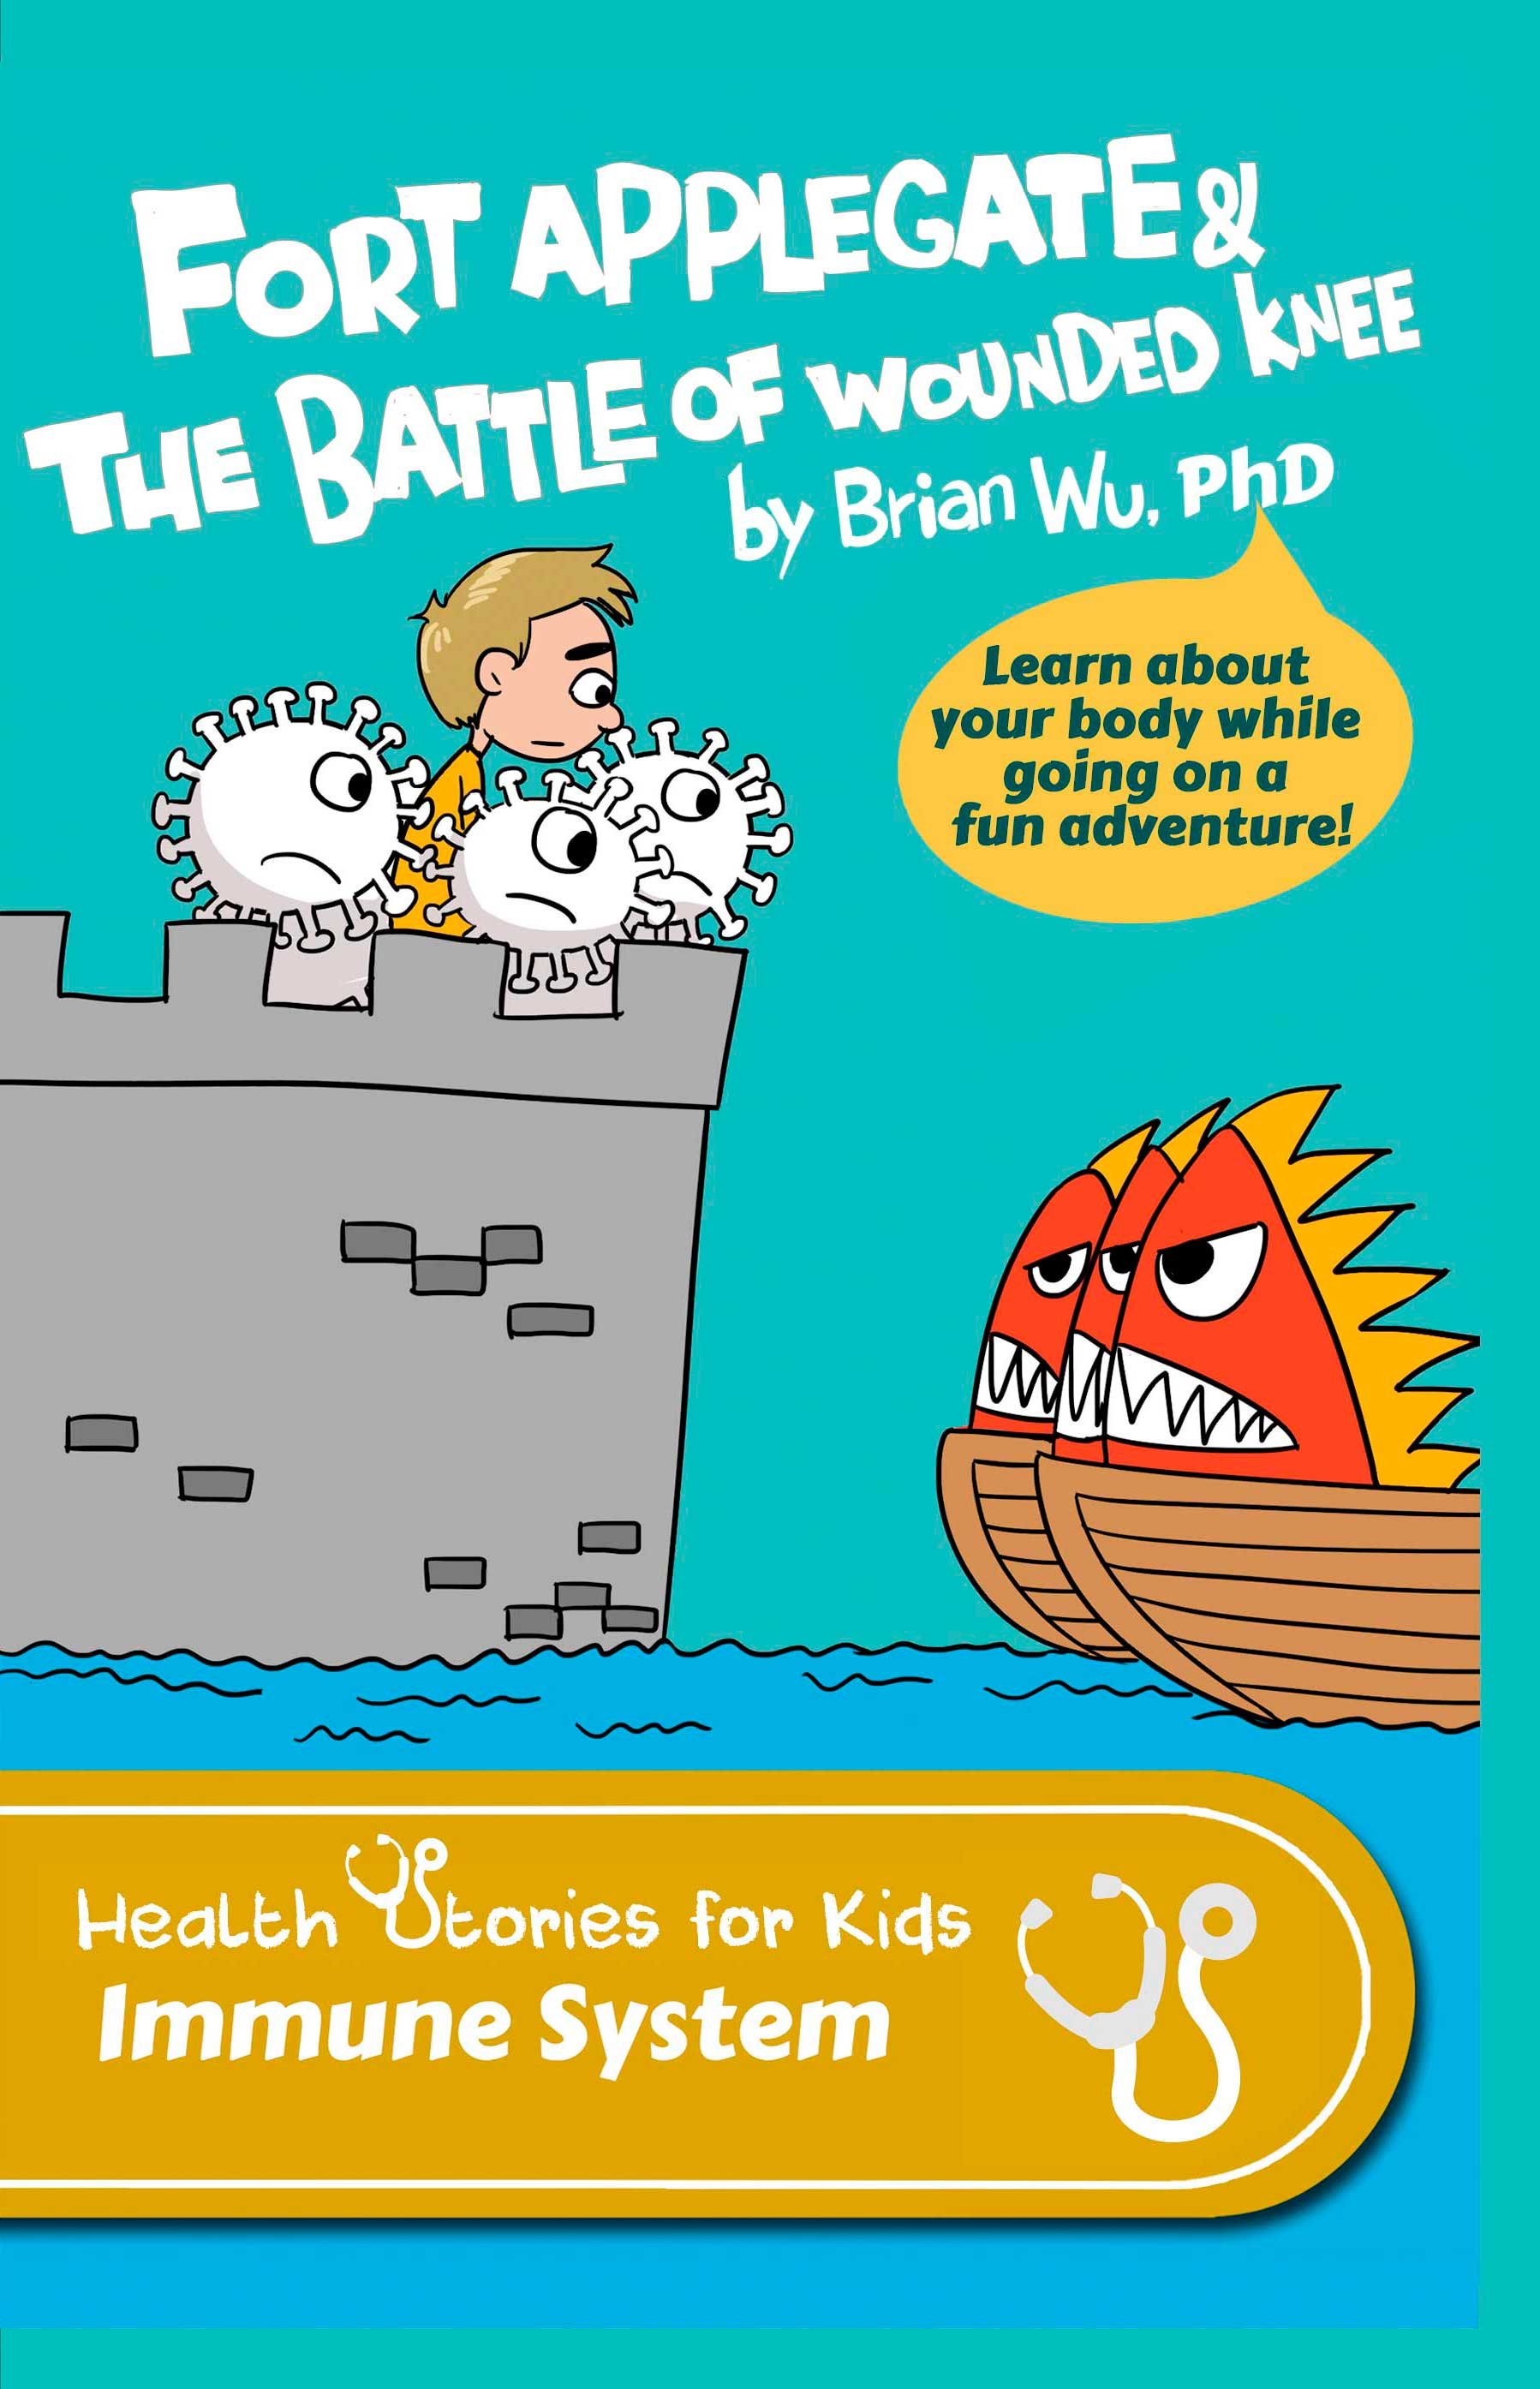 Health Stories for Kids Immune System